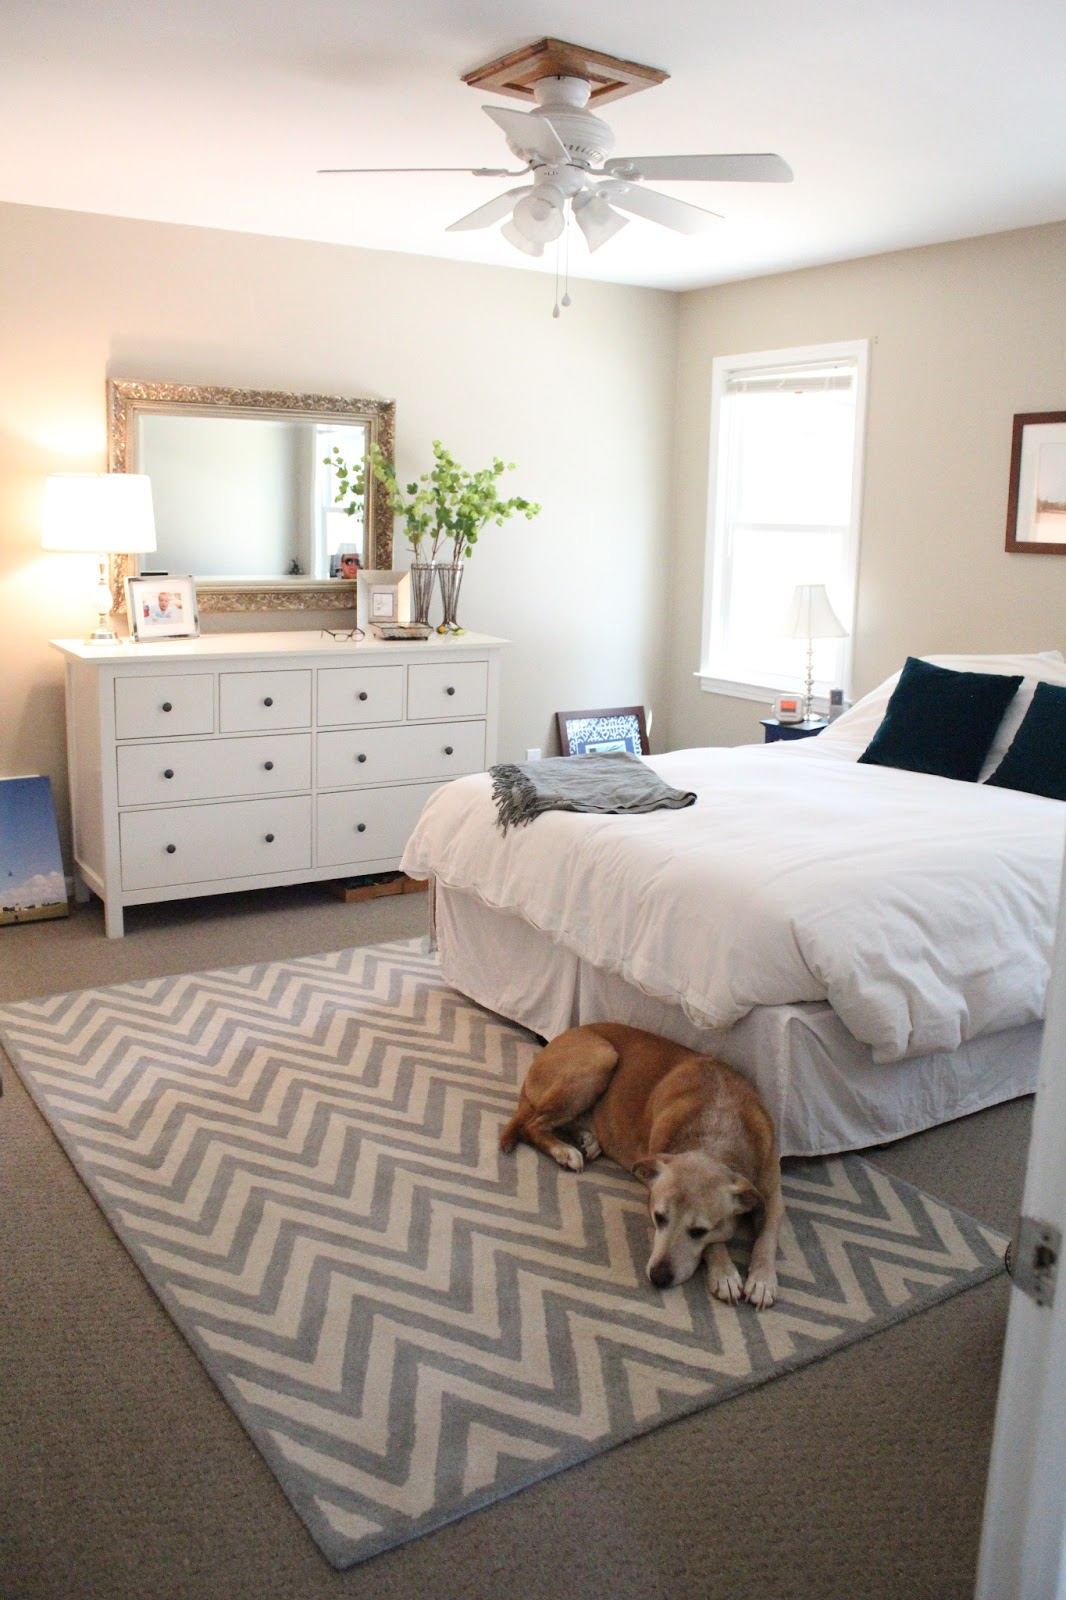 See more ideas about rental decorating, diy home decor, home diy. Ten June: Our Rental House: A Master Bedroom Tour